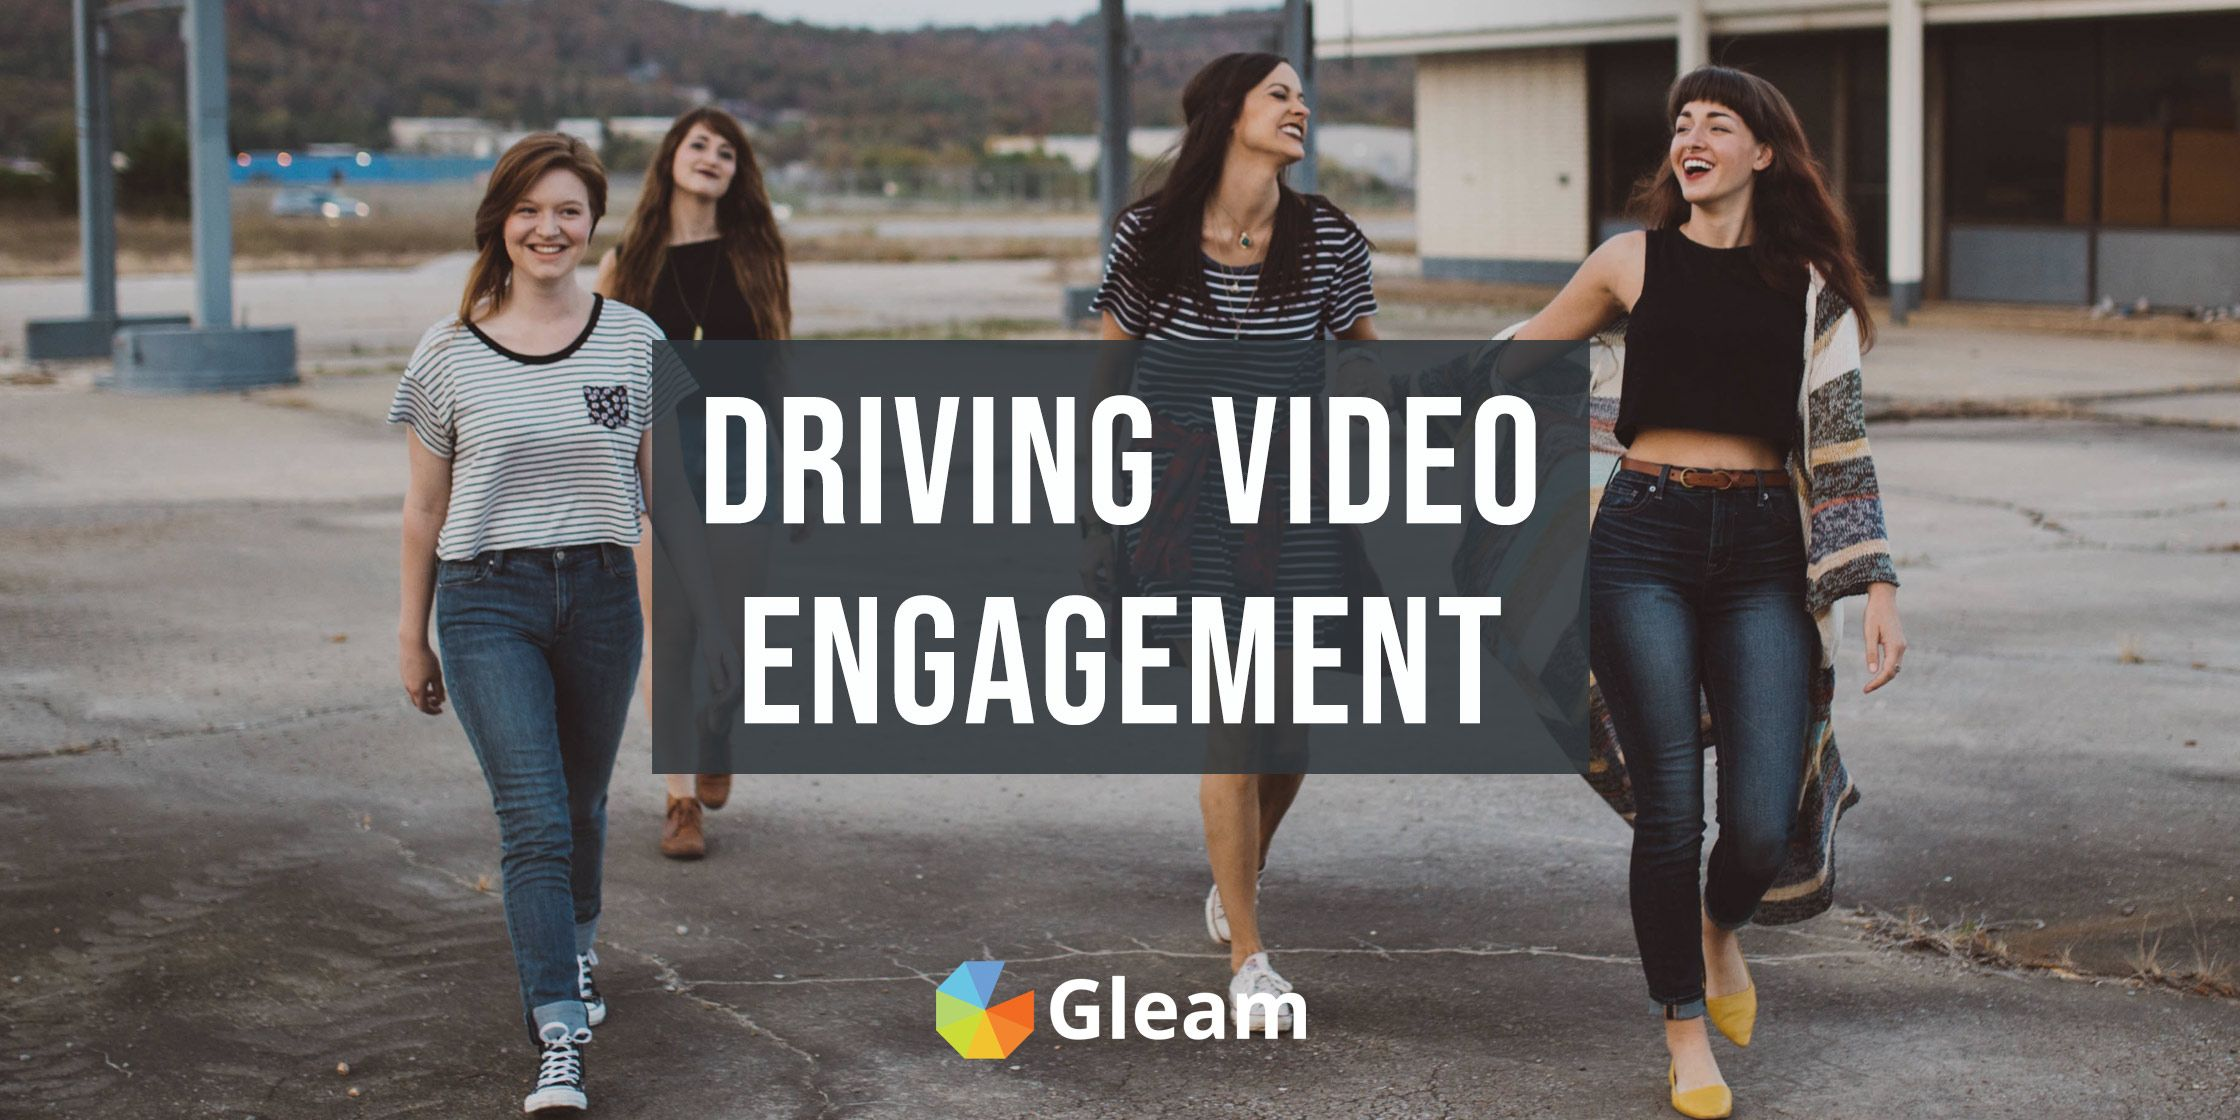 Using Gleam to Drive More Video & Stream Engagement